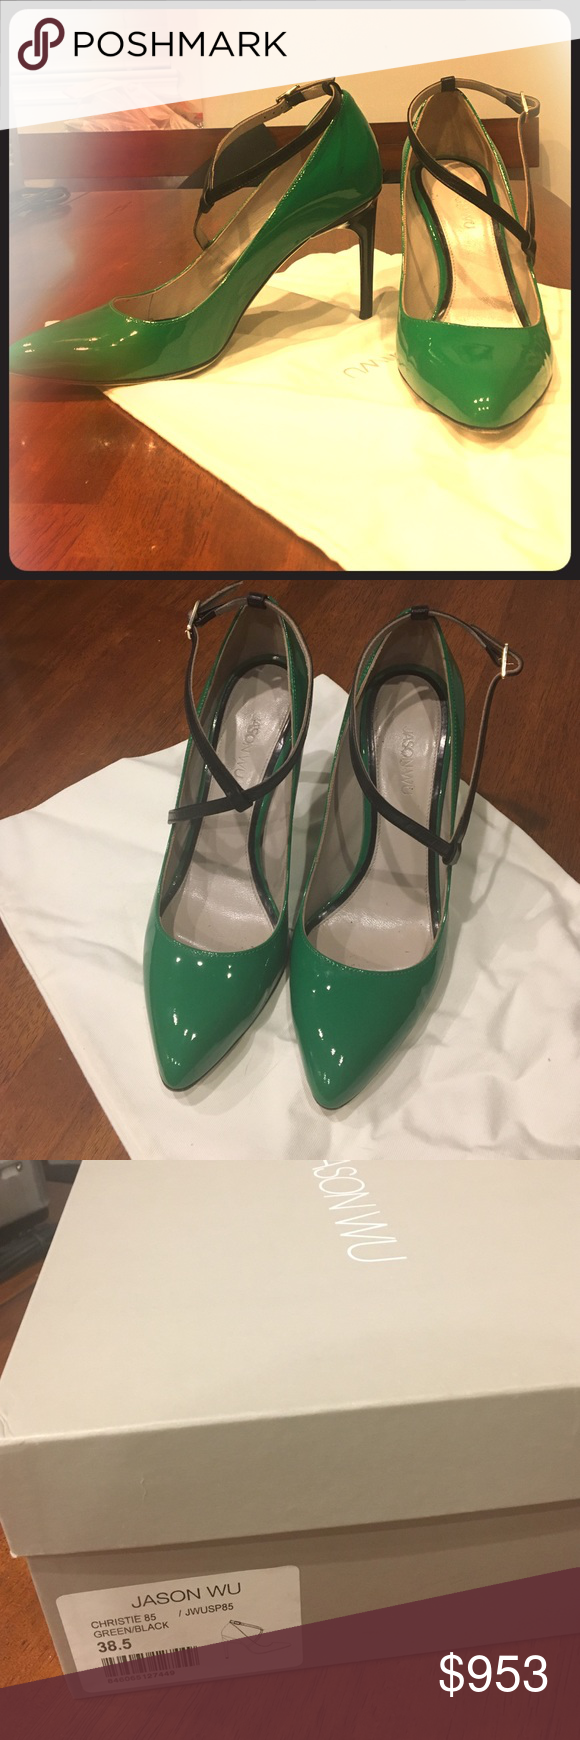 Jason Wu Patent Leather Heels Green and black patent leather heels with unique strap in front. I received so many compliments every time I wore these! These shoes run small. I am a size 8 in US shoe sizes and these fit me well. In excellent condition! Jason Wu Shoes Heels